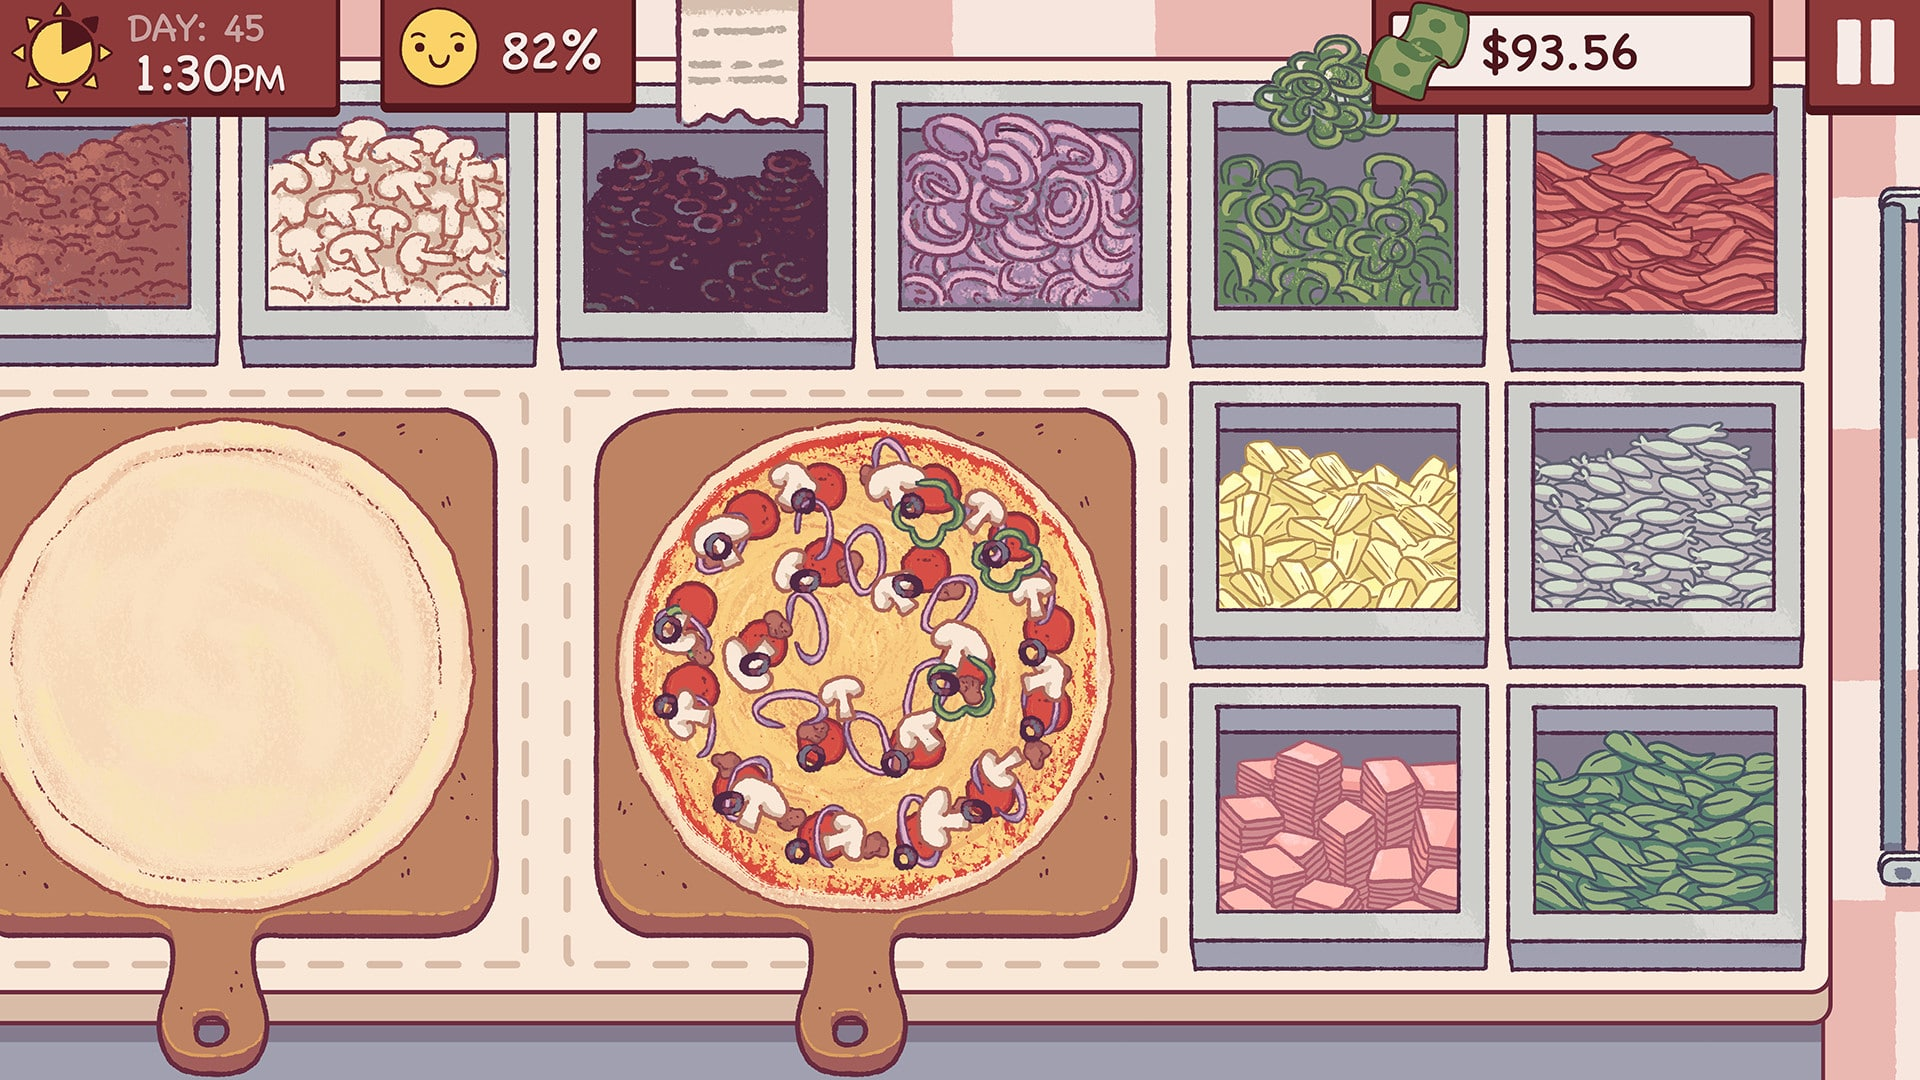 Pizza Screenshot 1